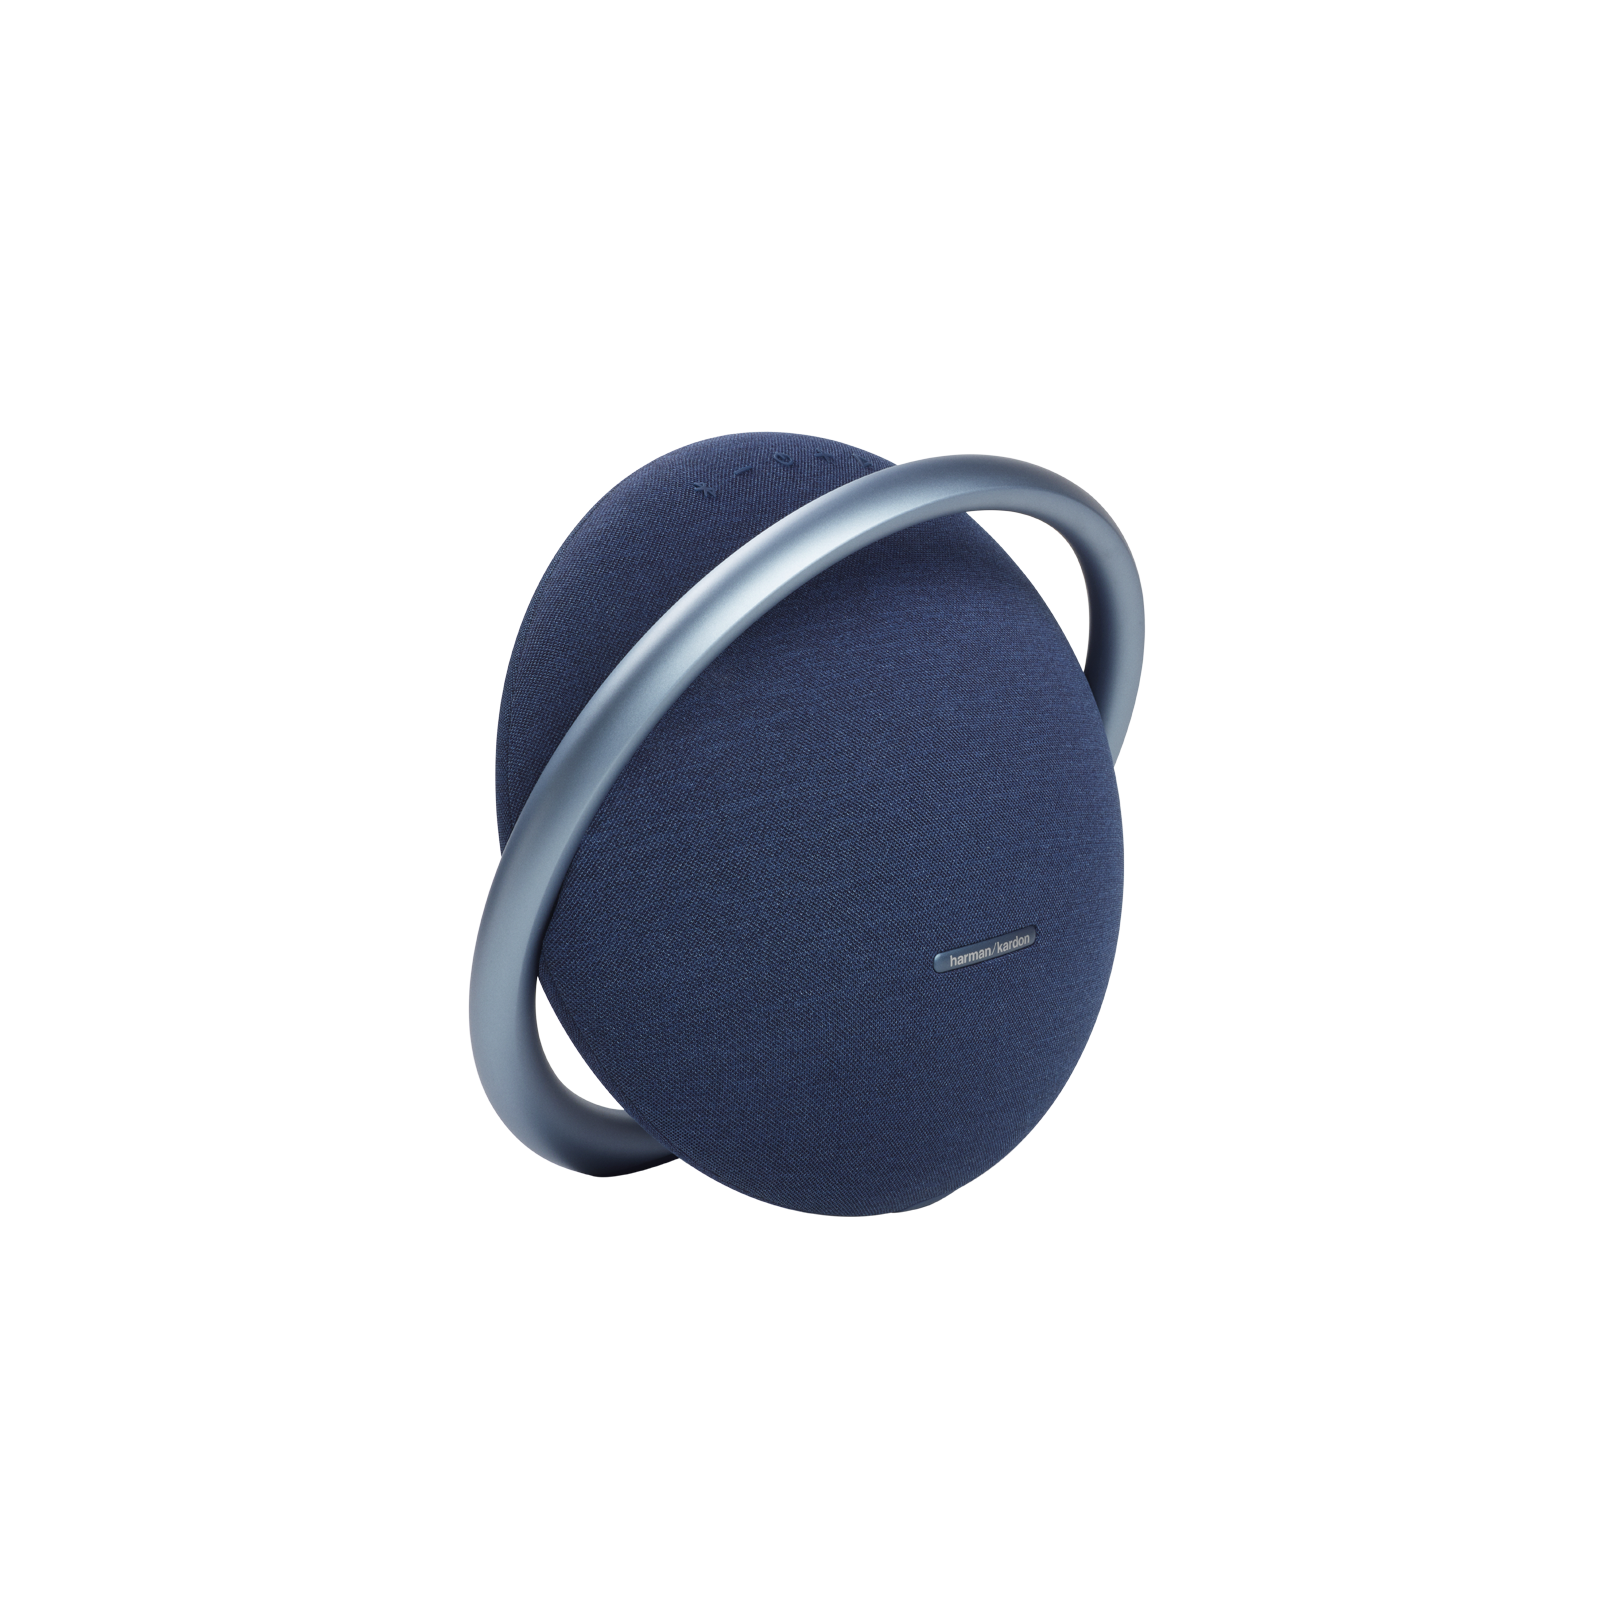 Onyx Studio 7 - Blue - Portable Stereo Bluetooth Speaker - Detailshot 1